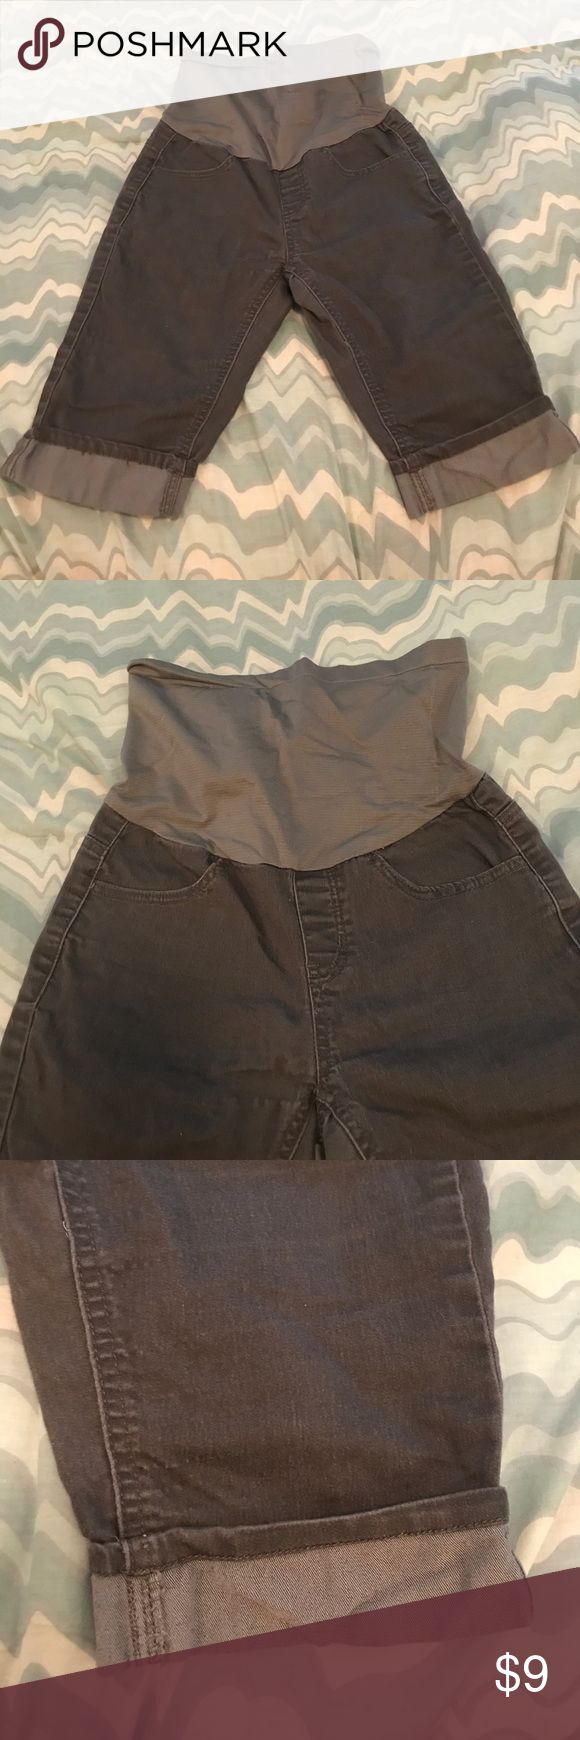 Gray Maternity Capri shorts size small Very nice gray jean looking Maternity capri shorts . They are a size small with the belly band attached to the top. Perfect for the end of summer and fall months! Pants Capris